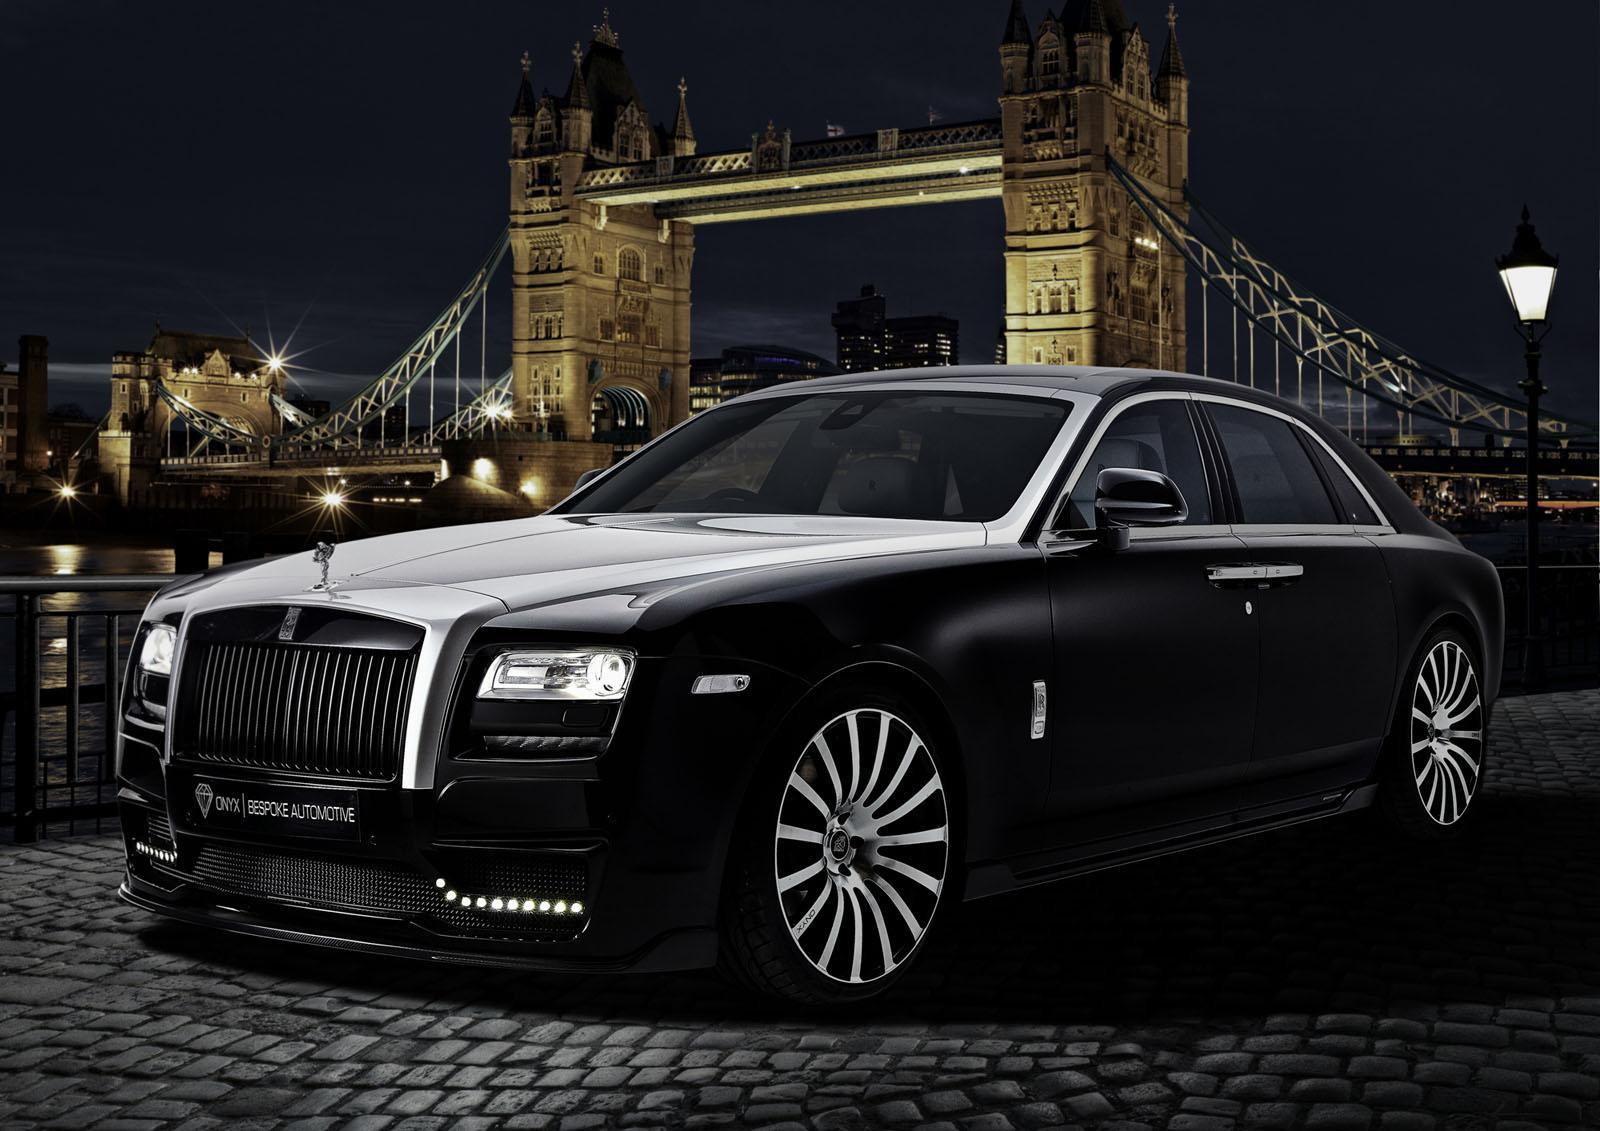 Rolls-Royce Ghost tricked out by Onyx Concept - Speed Carz